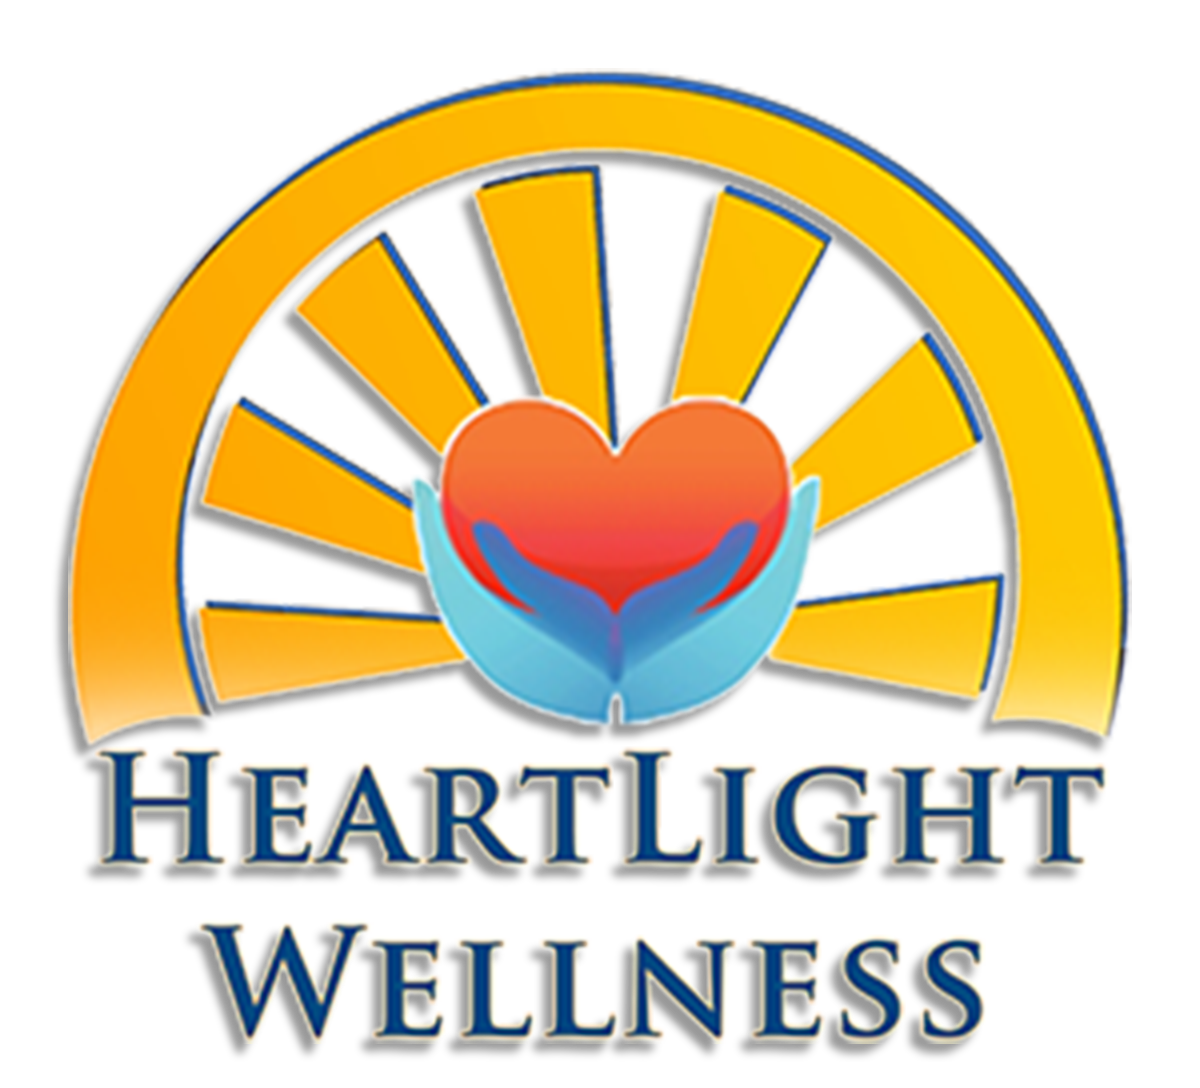 HEARTLIGHT LOGO V30  2x2 drop shadowpng